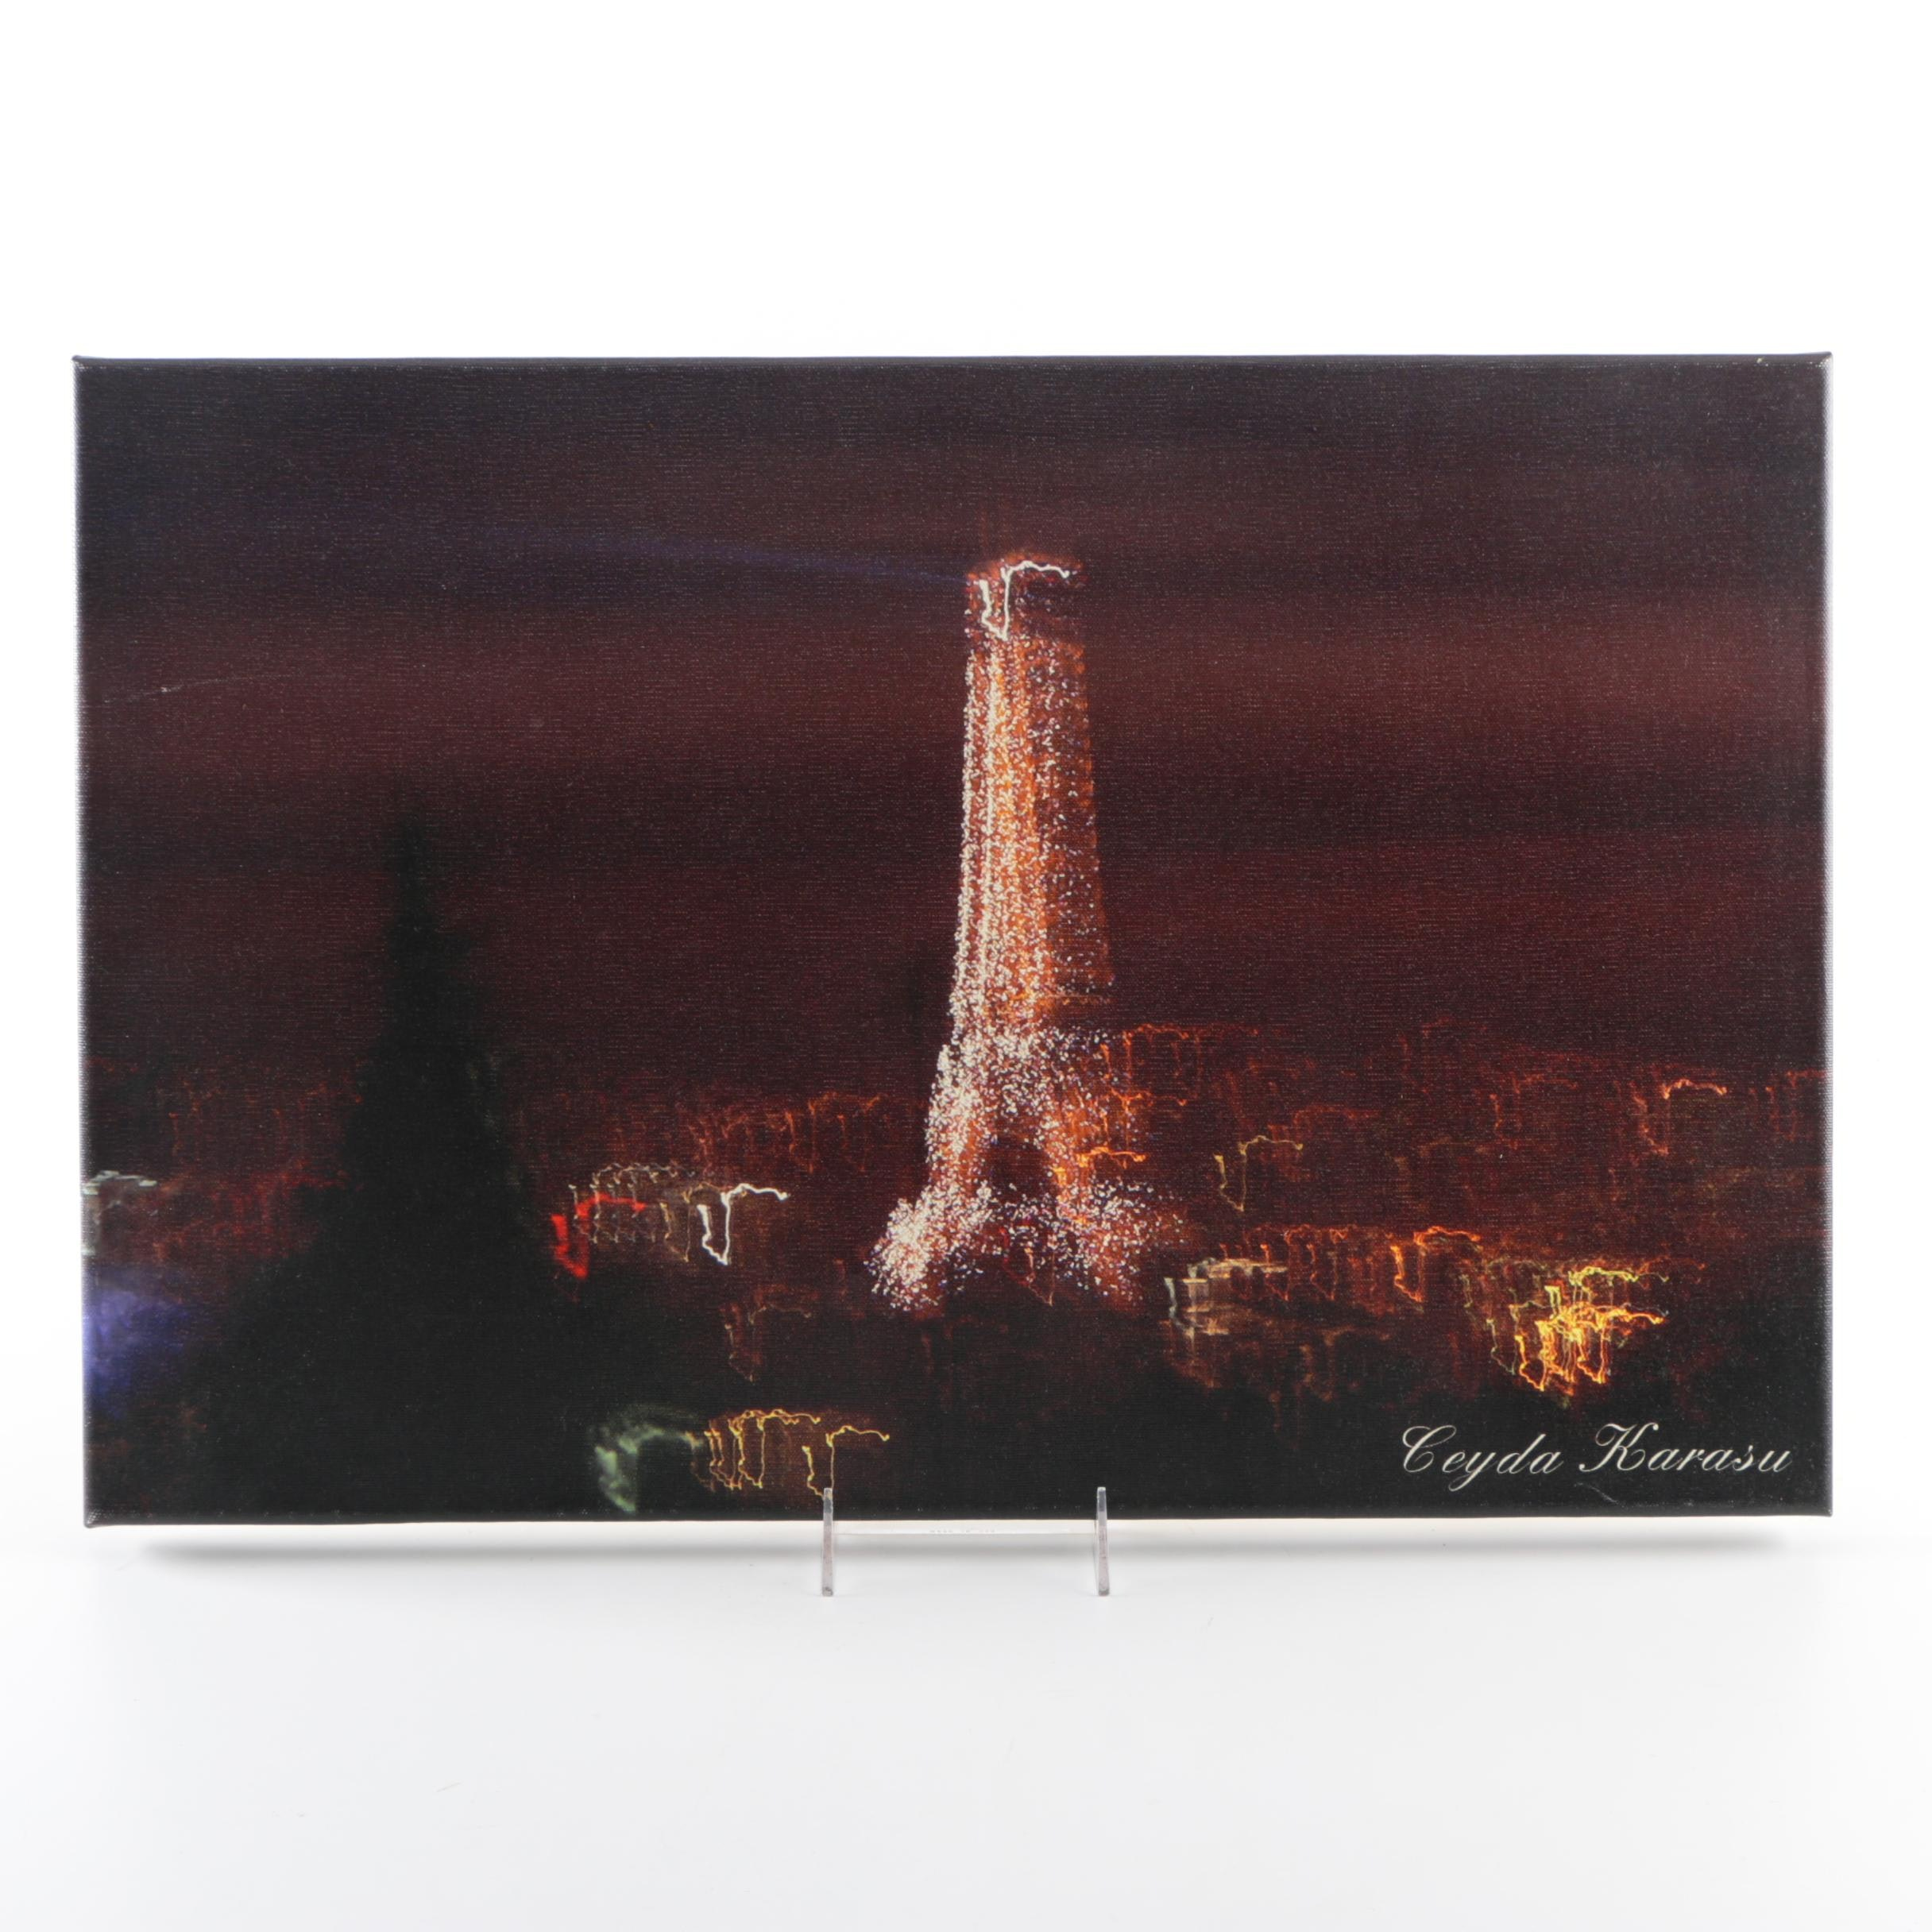 Giclee Print on Canvas of a Cityscape